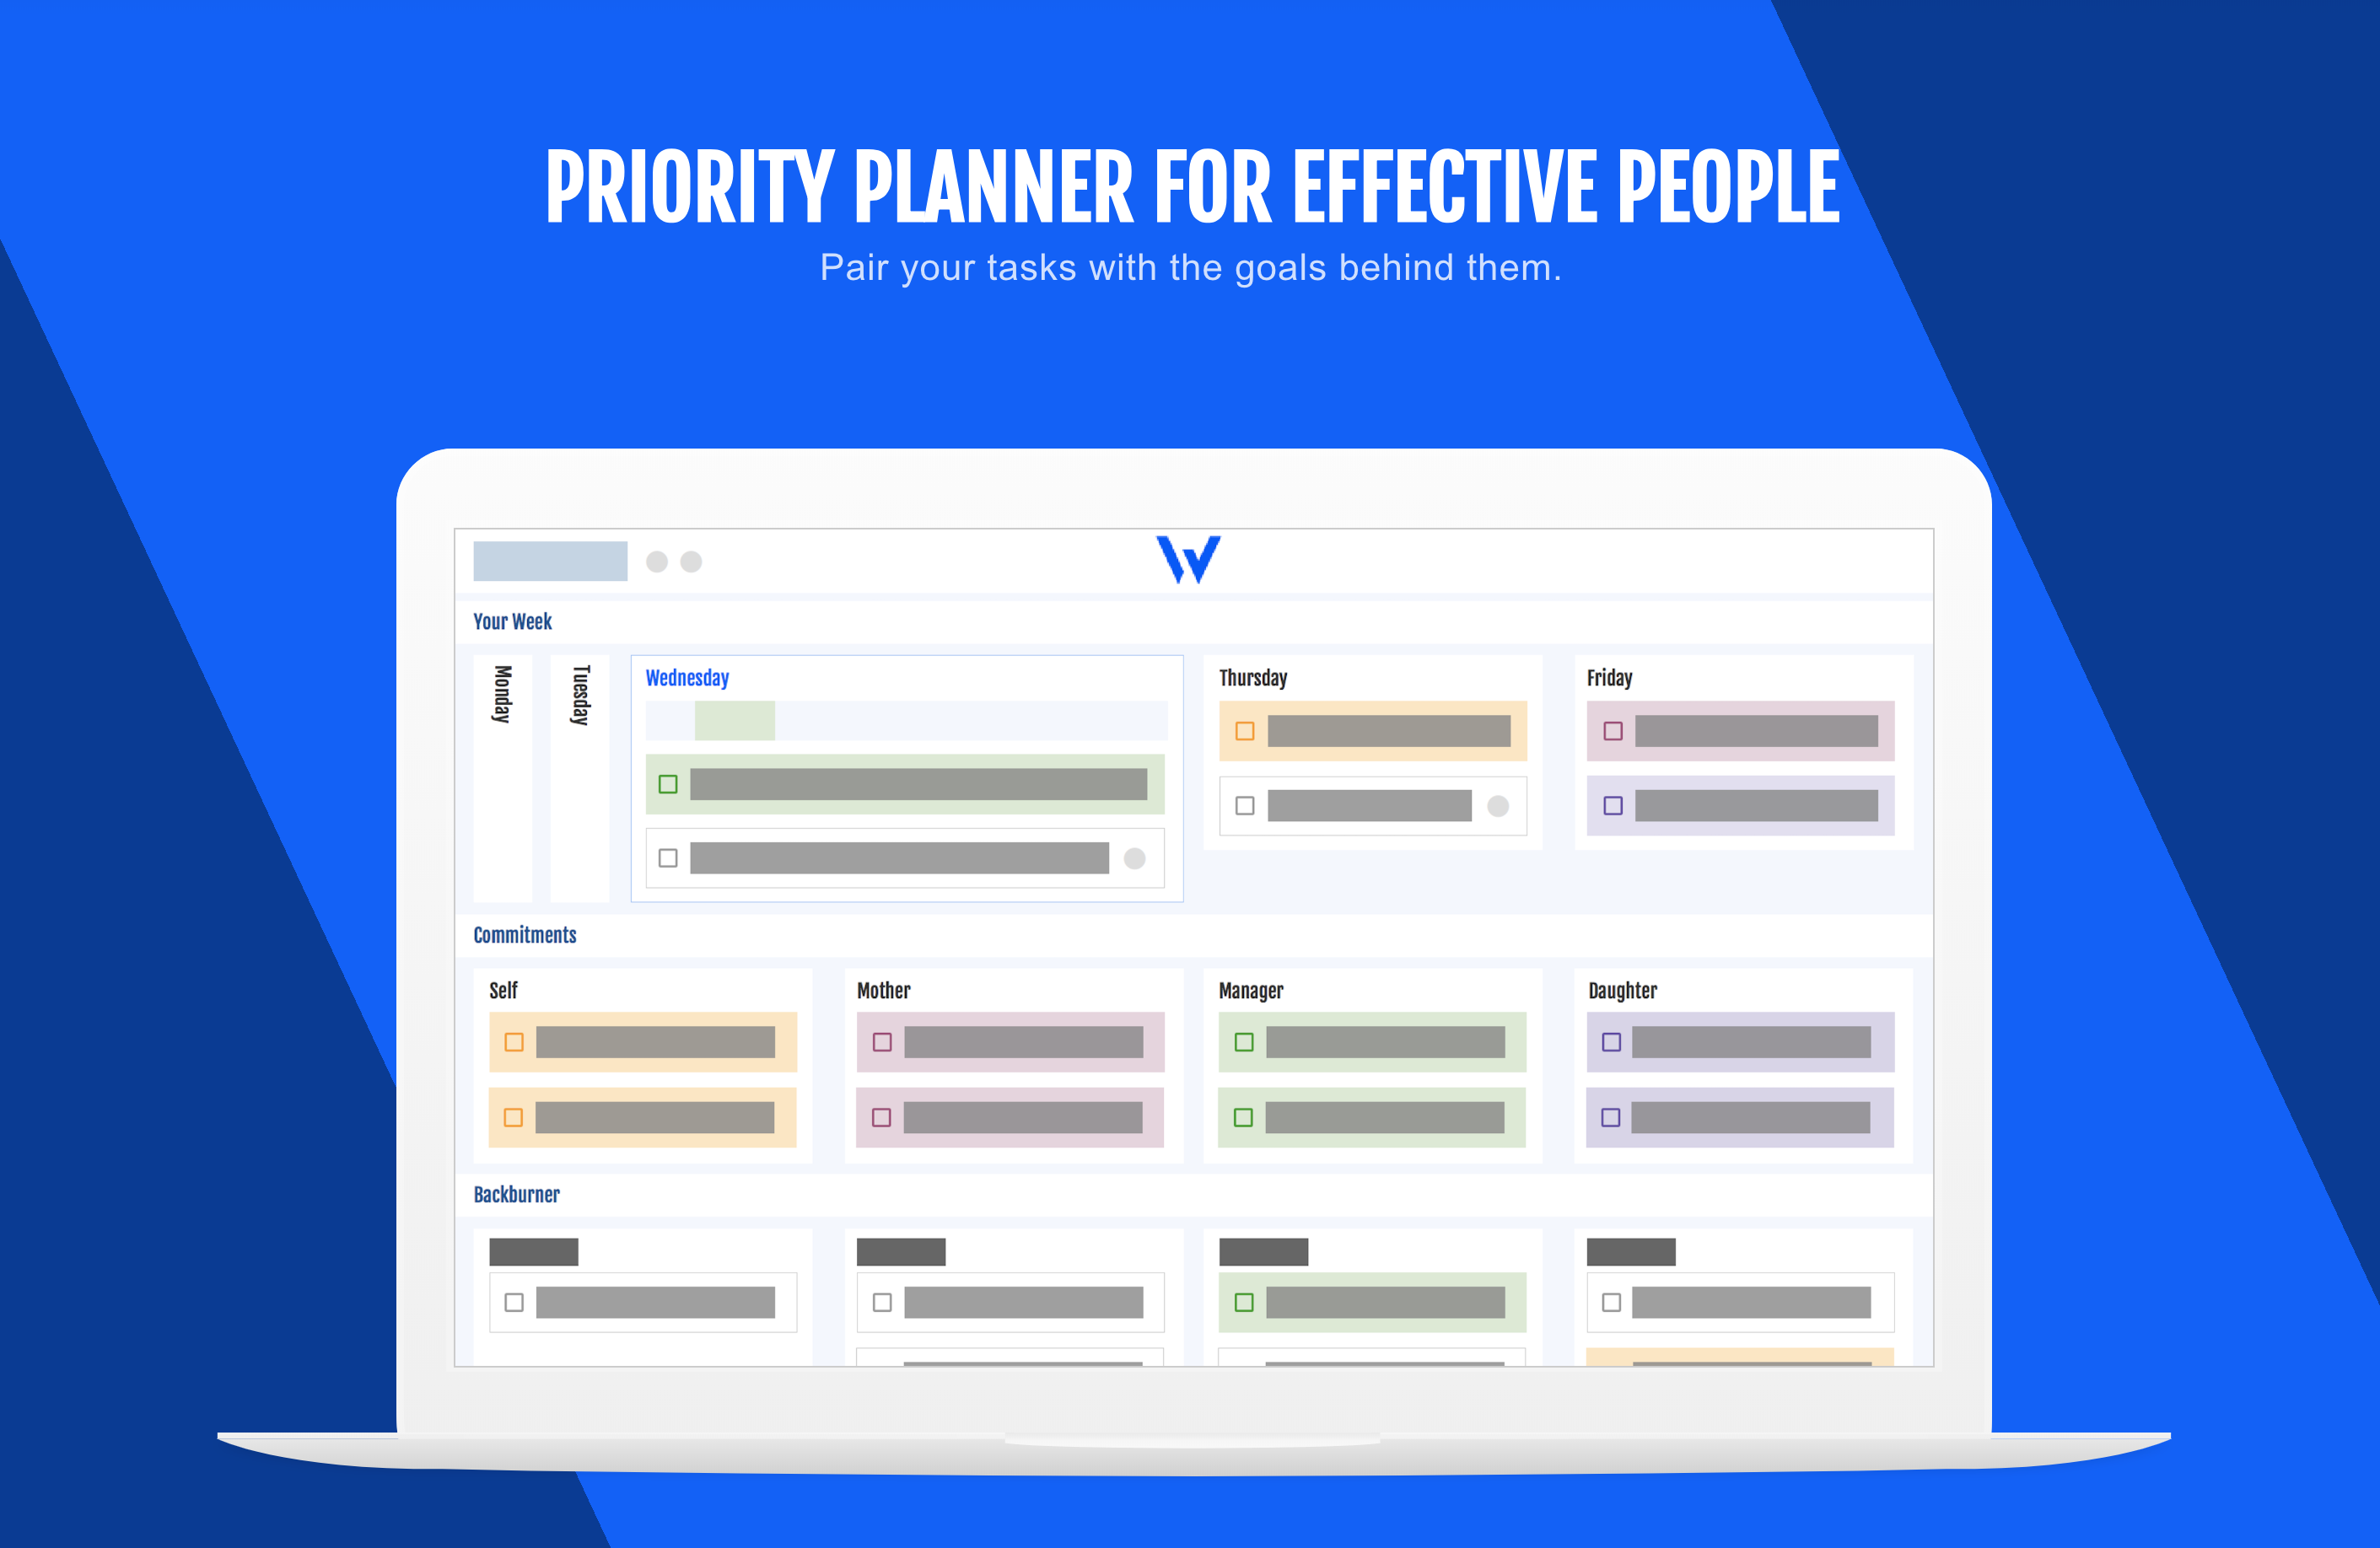 Priority Planner with Effective People